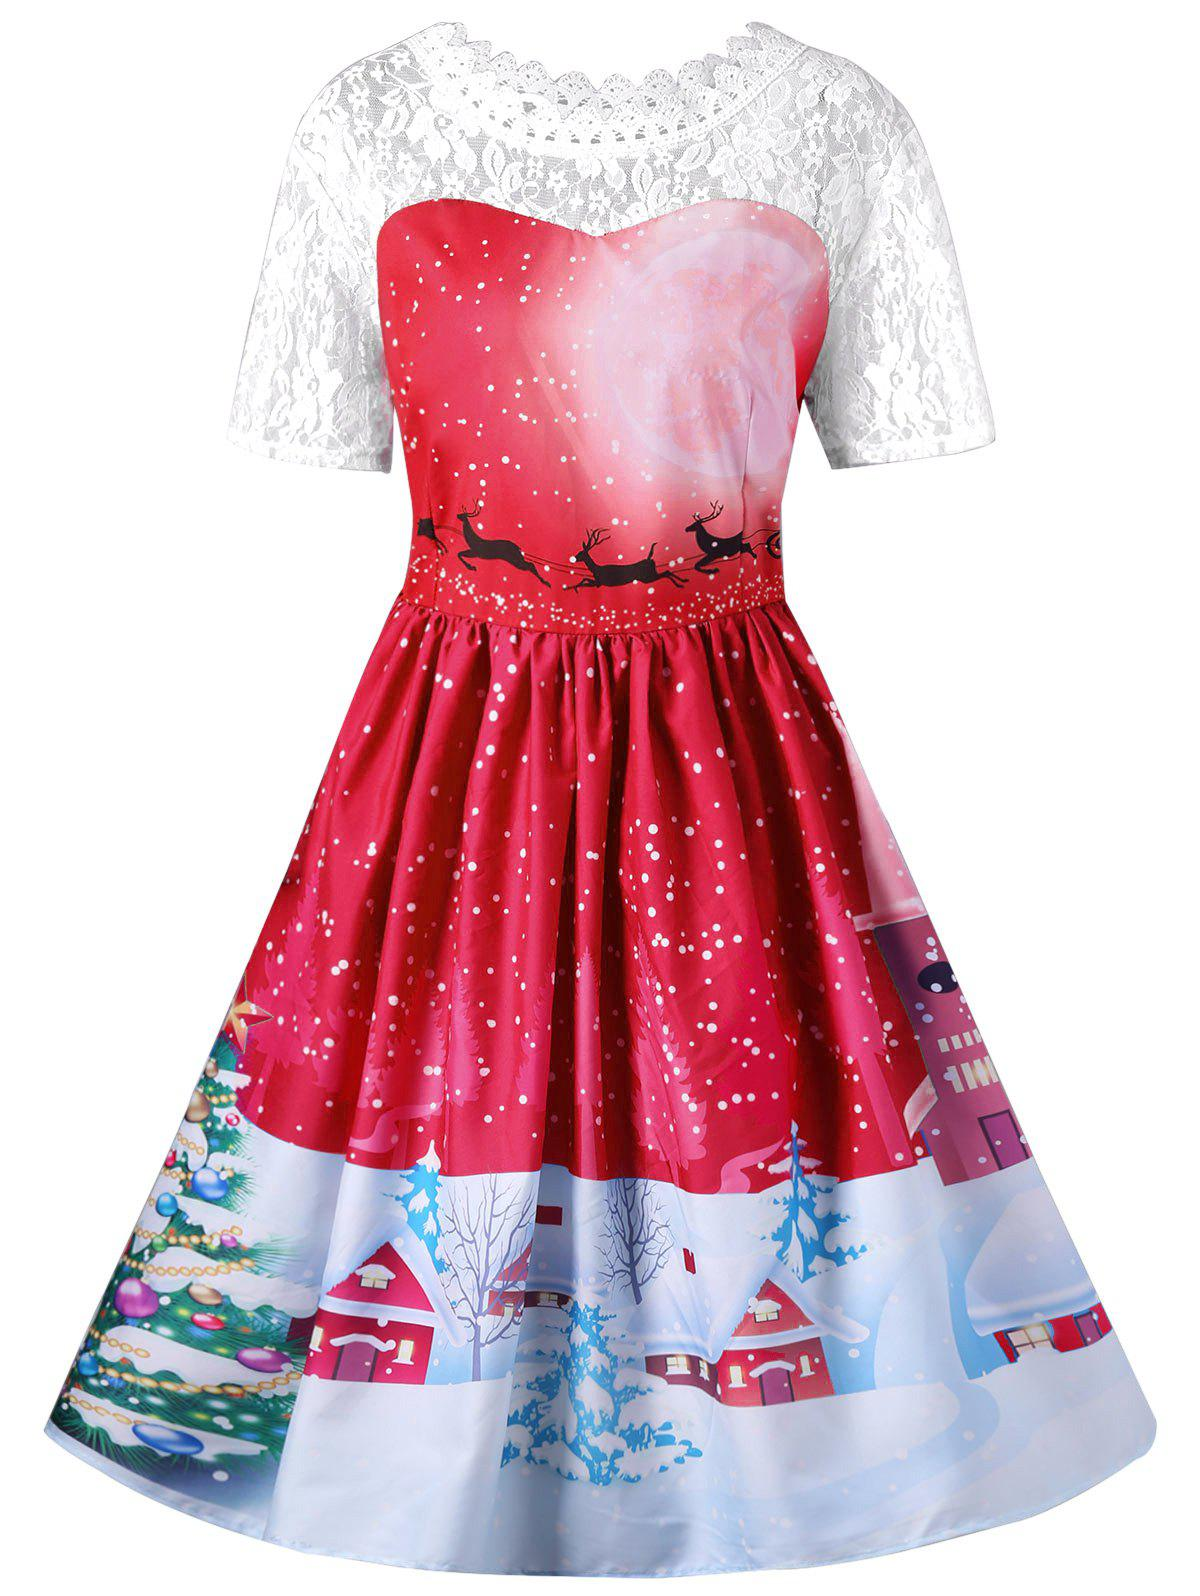 Hot Vintage Christmas Graphic Lace Yoke Swing Dress